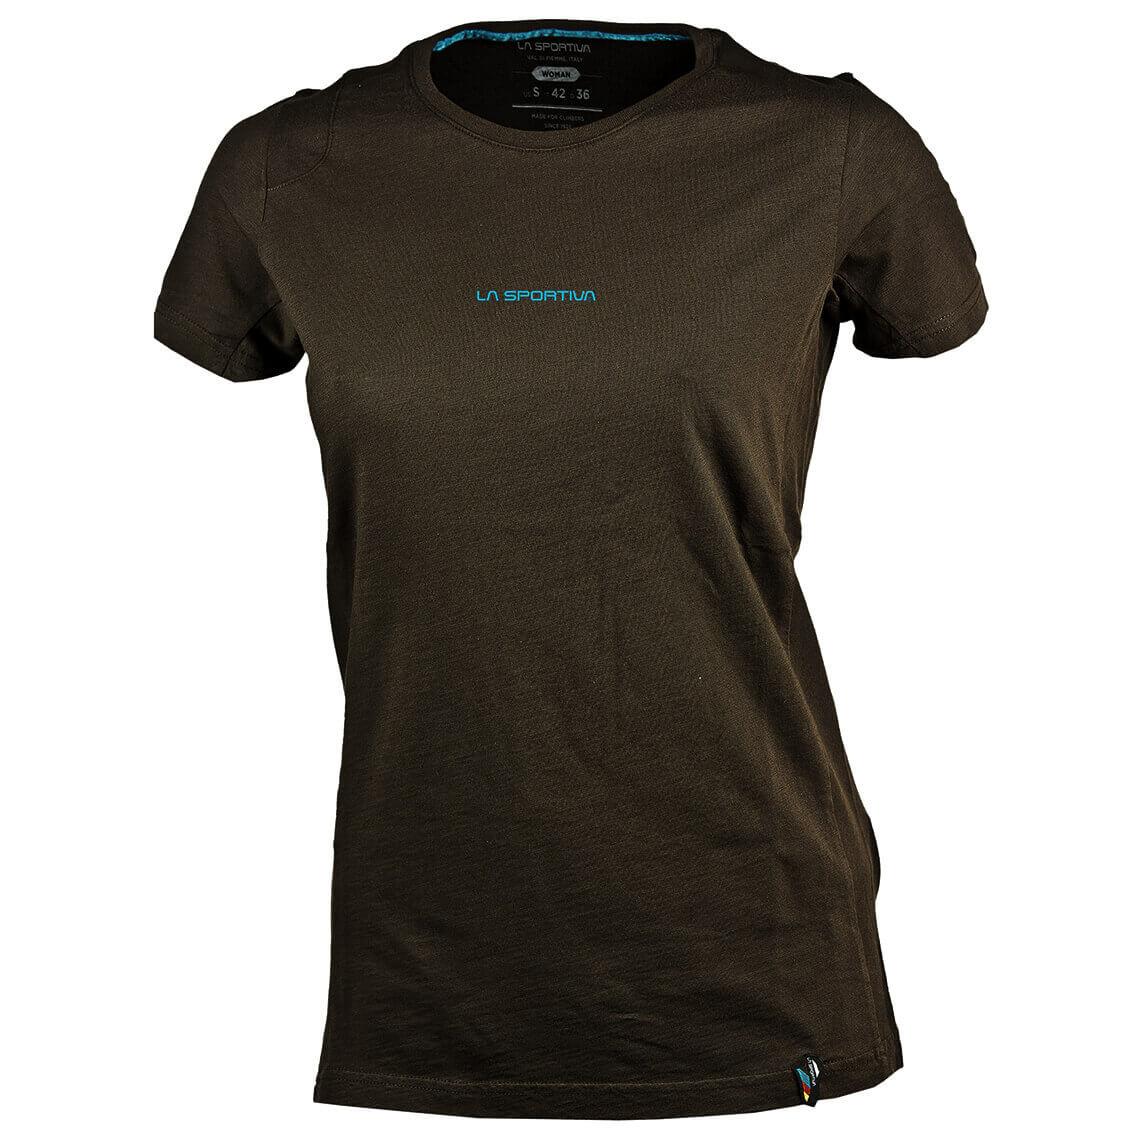 La sportiva vintage logo t shirt women 39 s buy online for Where to order shirts with logos